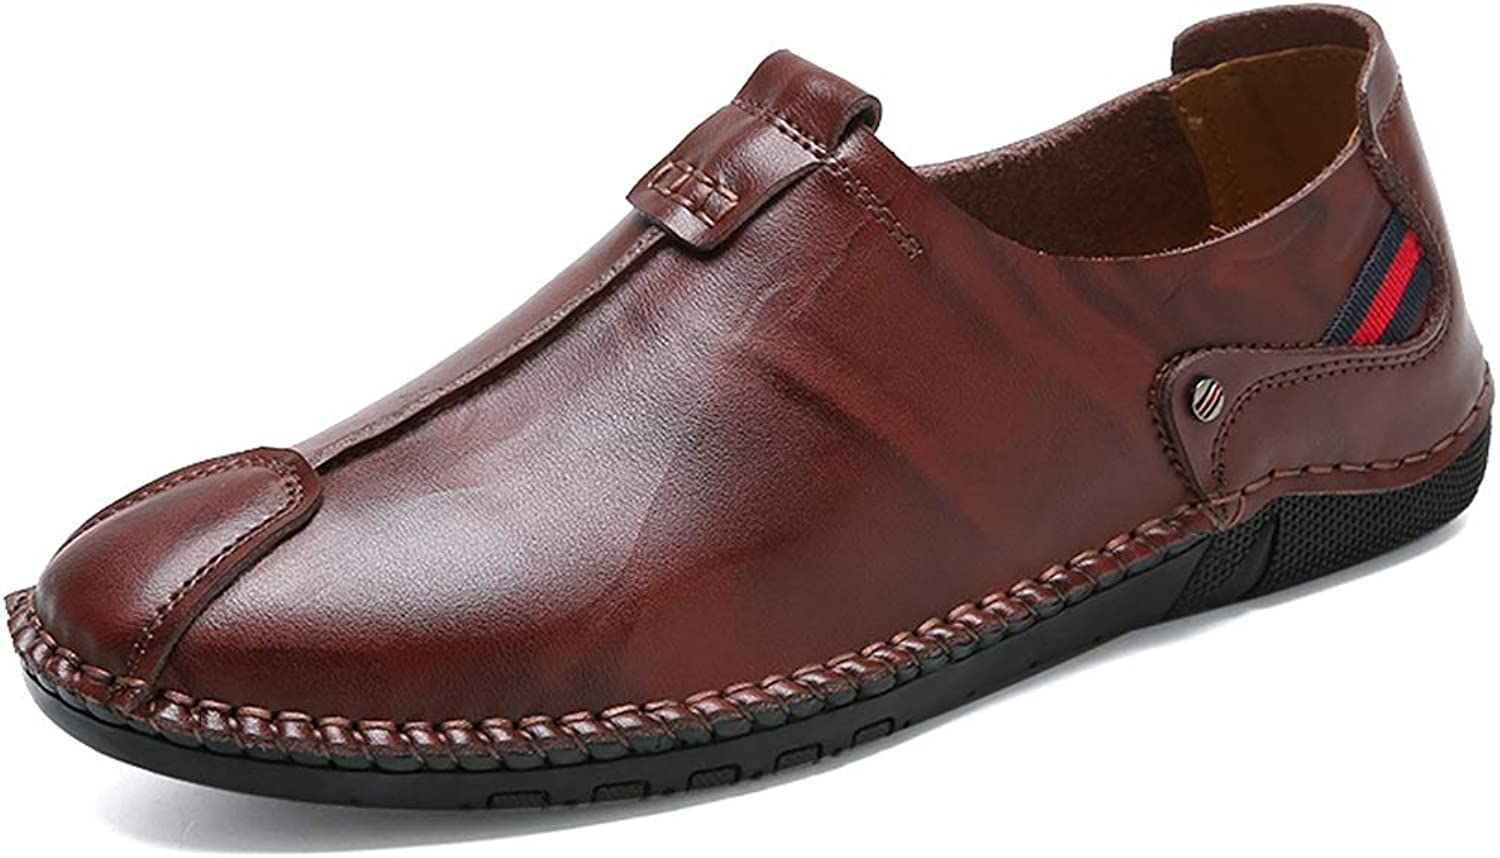 Easy Go Shopping Men Boat Moccasins Slip On Style Microfiber Leather Handtailor Round Toe Pure colors Driving Loafer Cricket shoes (color   Reddish brown, Size   8.5 UK)